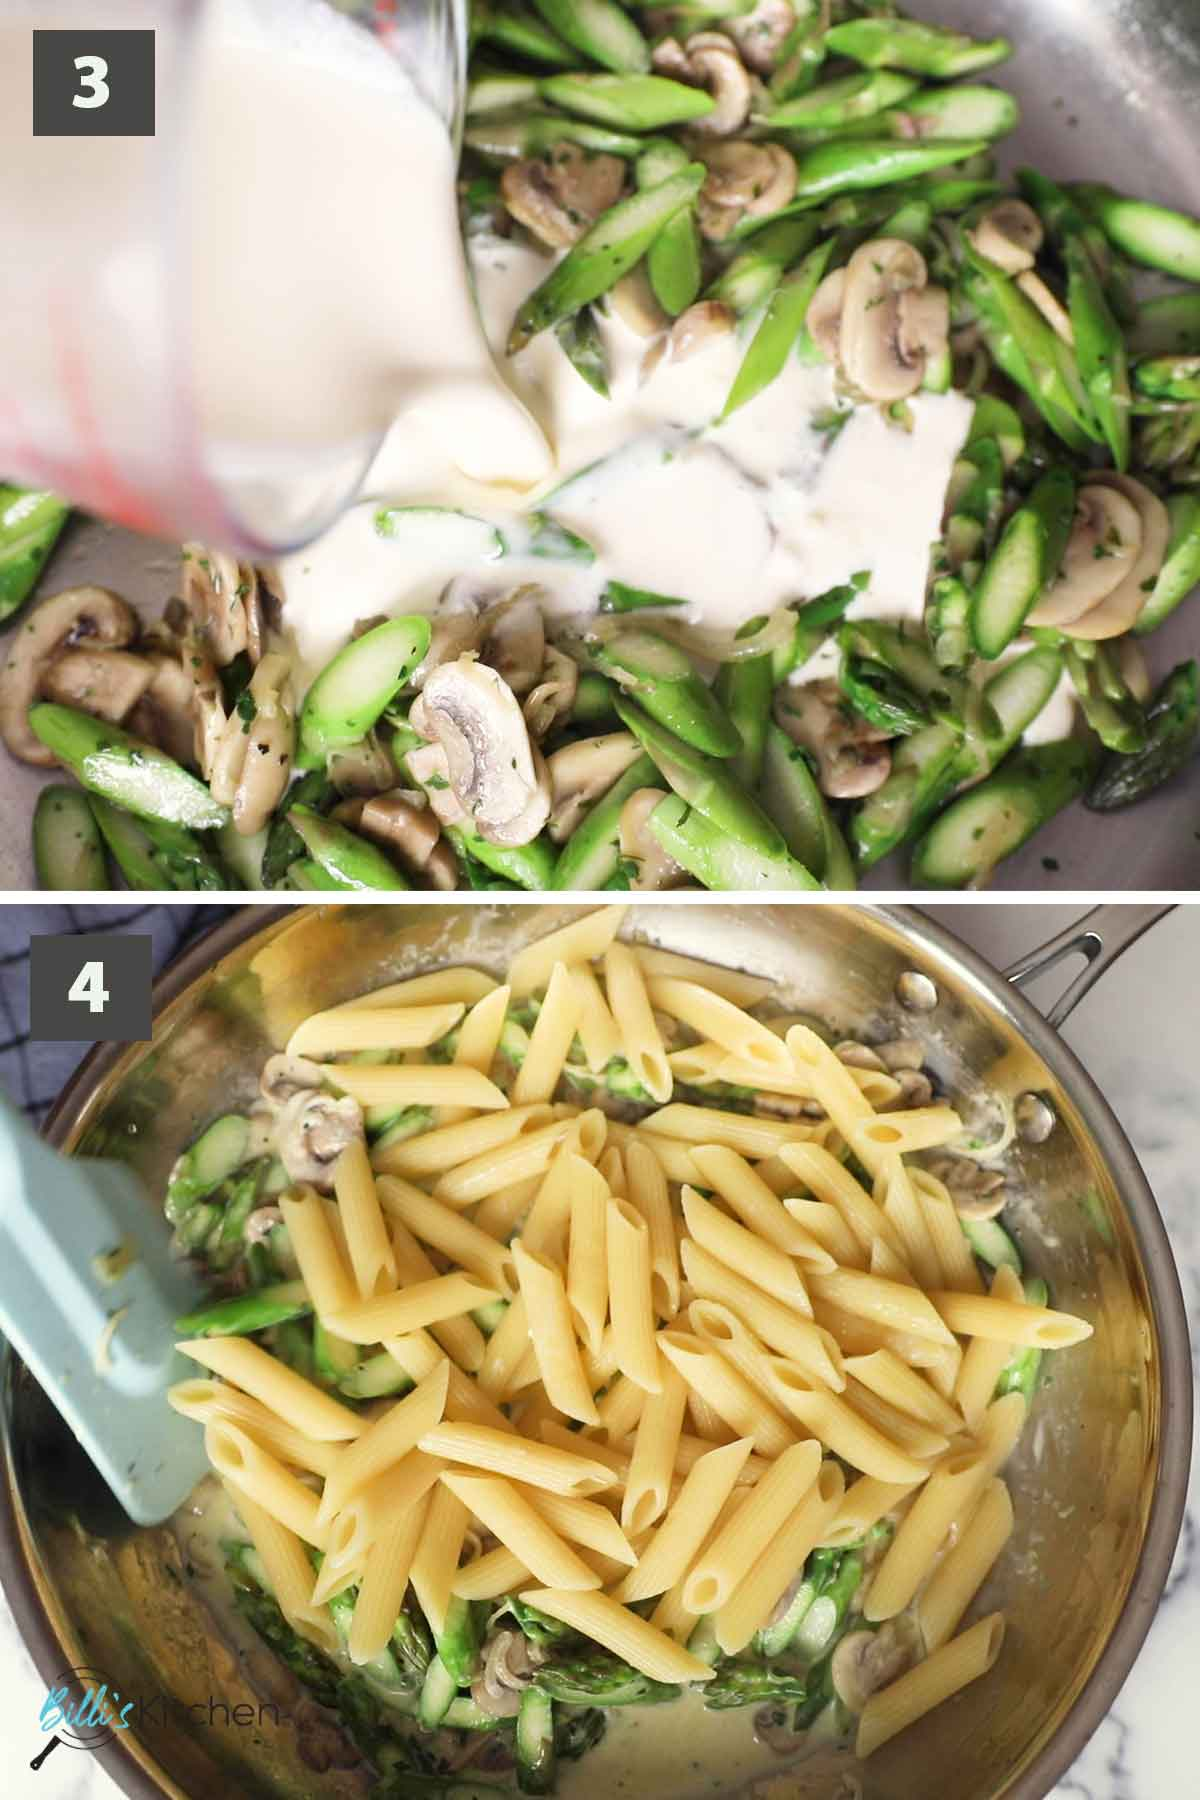 Second part of a collage of images showing the step by step process of preparing creamy pasta with asparagus and mushrooms.